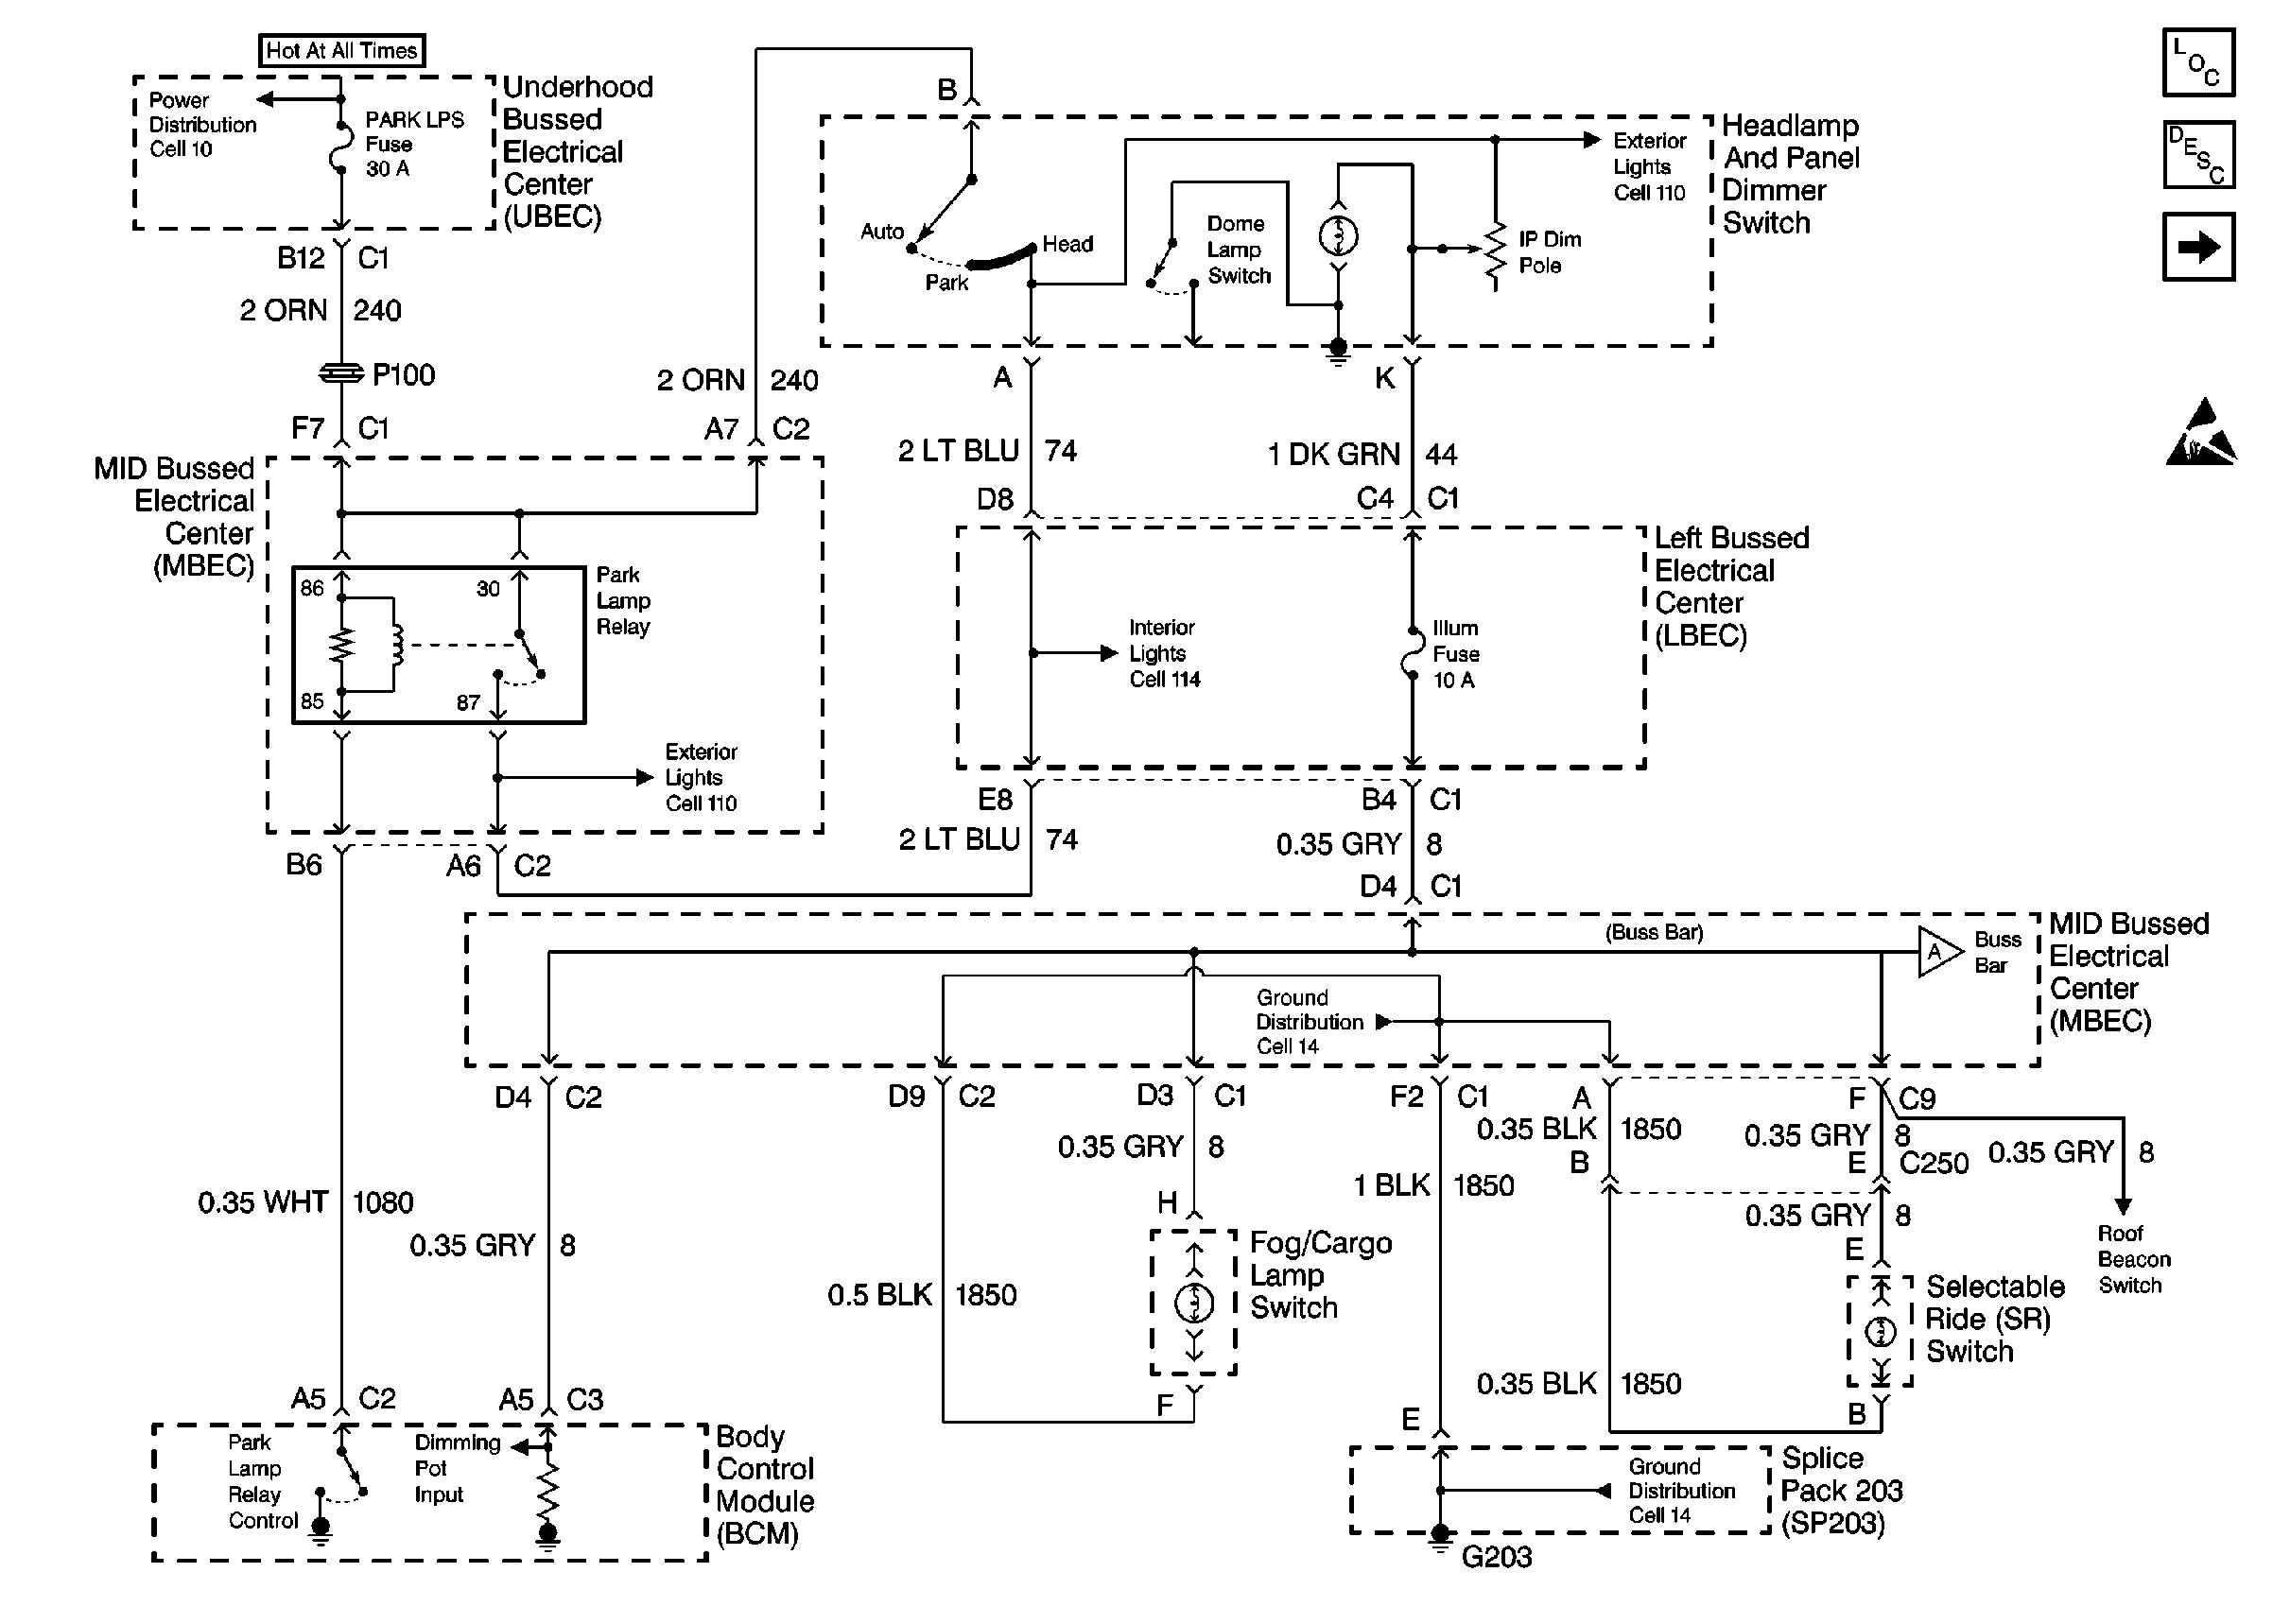 2008 gmc parts diagram electrical diagrams forum u2022 rh jimmellon co uk 2008 sierra stereo wiring diagram 2008 gmc sierra radio wiring diagram